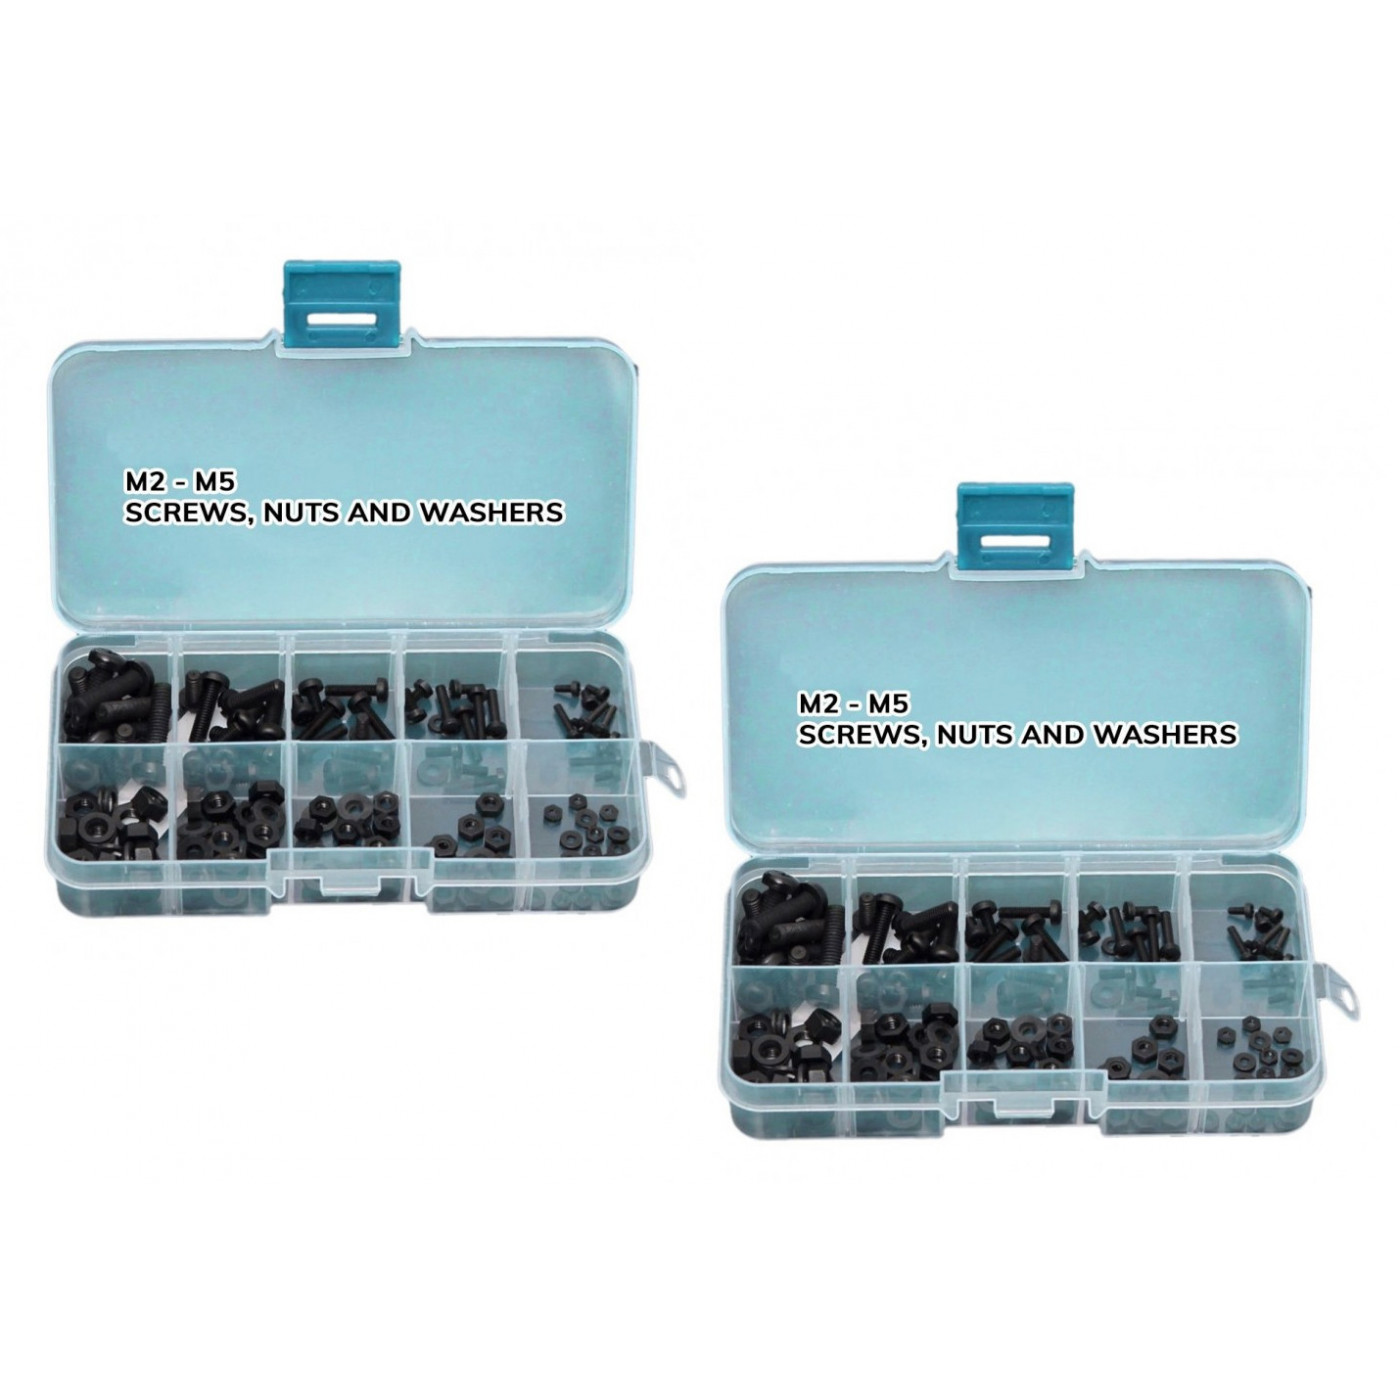 Set of 300 nylon bolts, nuts and washers (black) in box